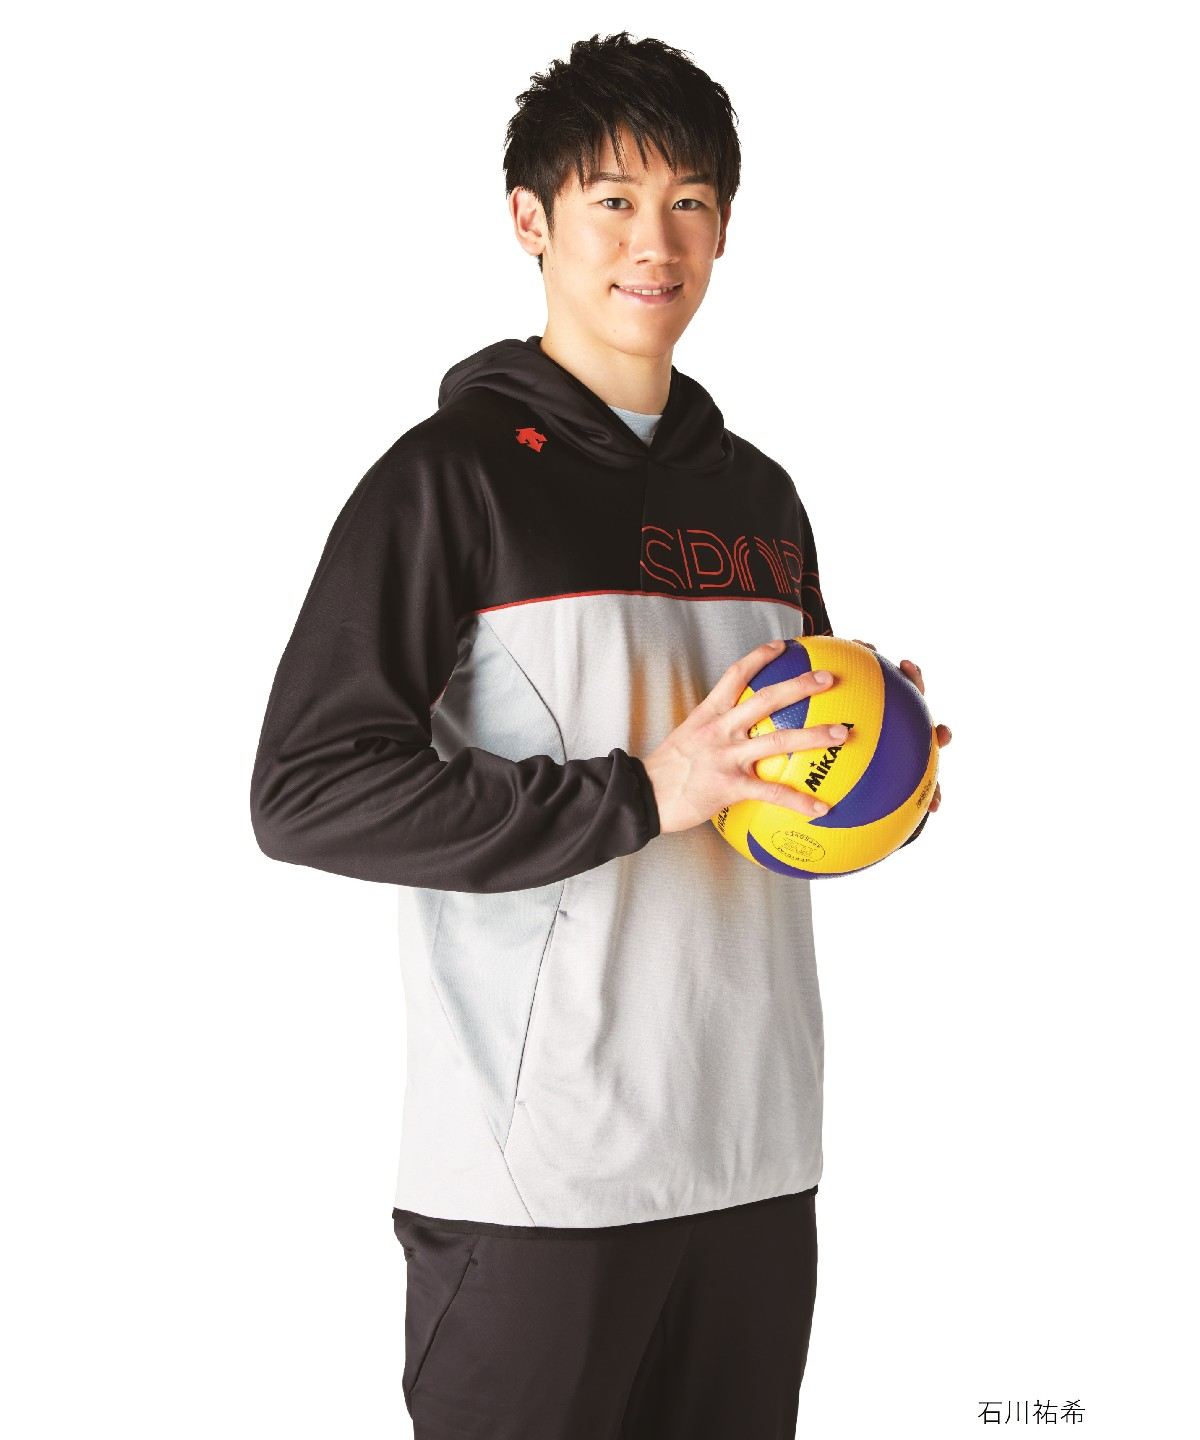 【VOLLEYBALL】石川祐希選手コーディネート